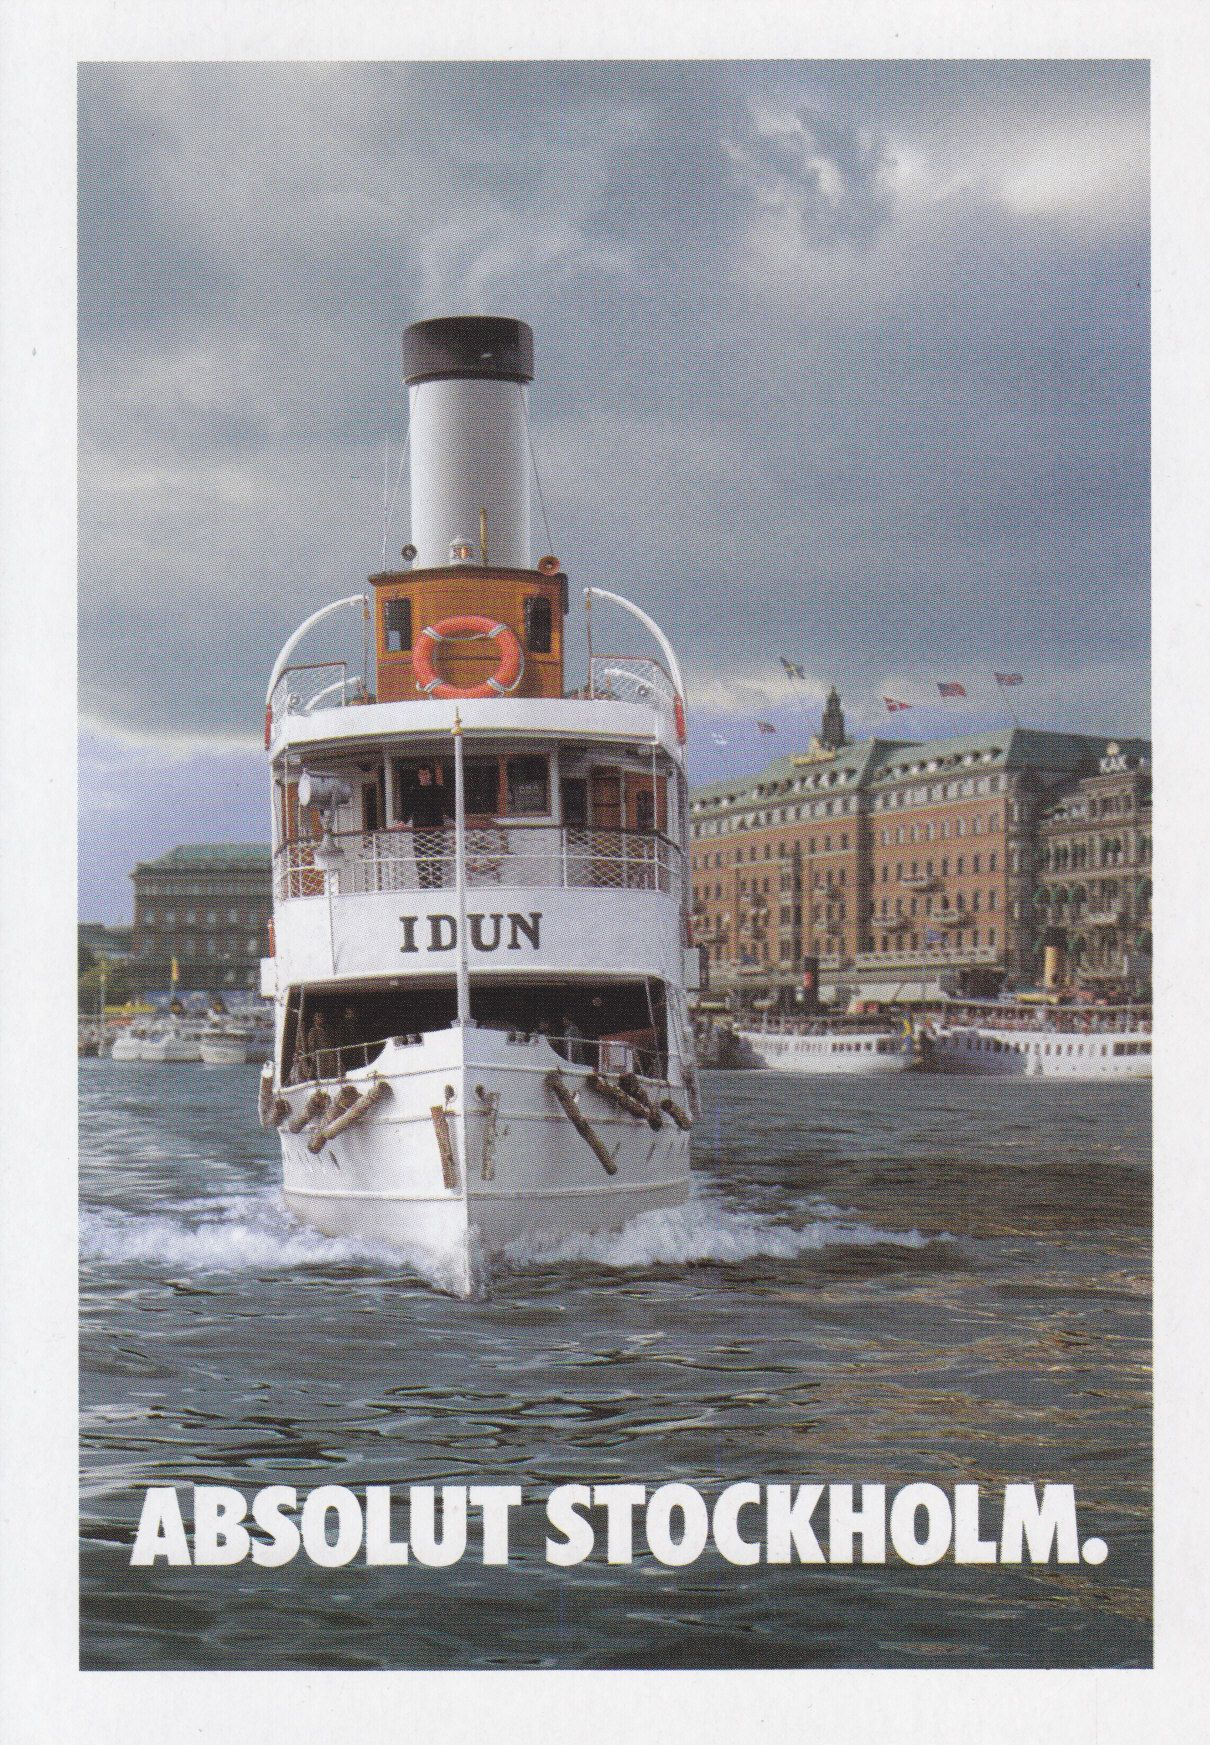 Absolut Stockholm - # 227 - Promocard - Italy - # 3.952